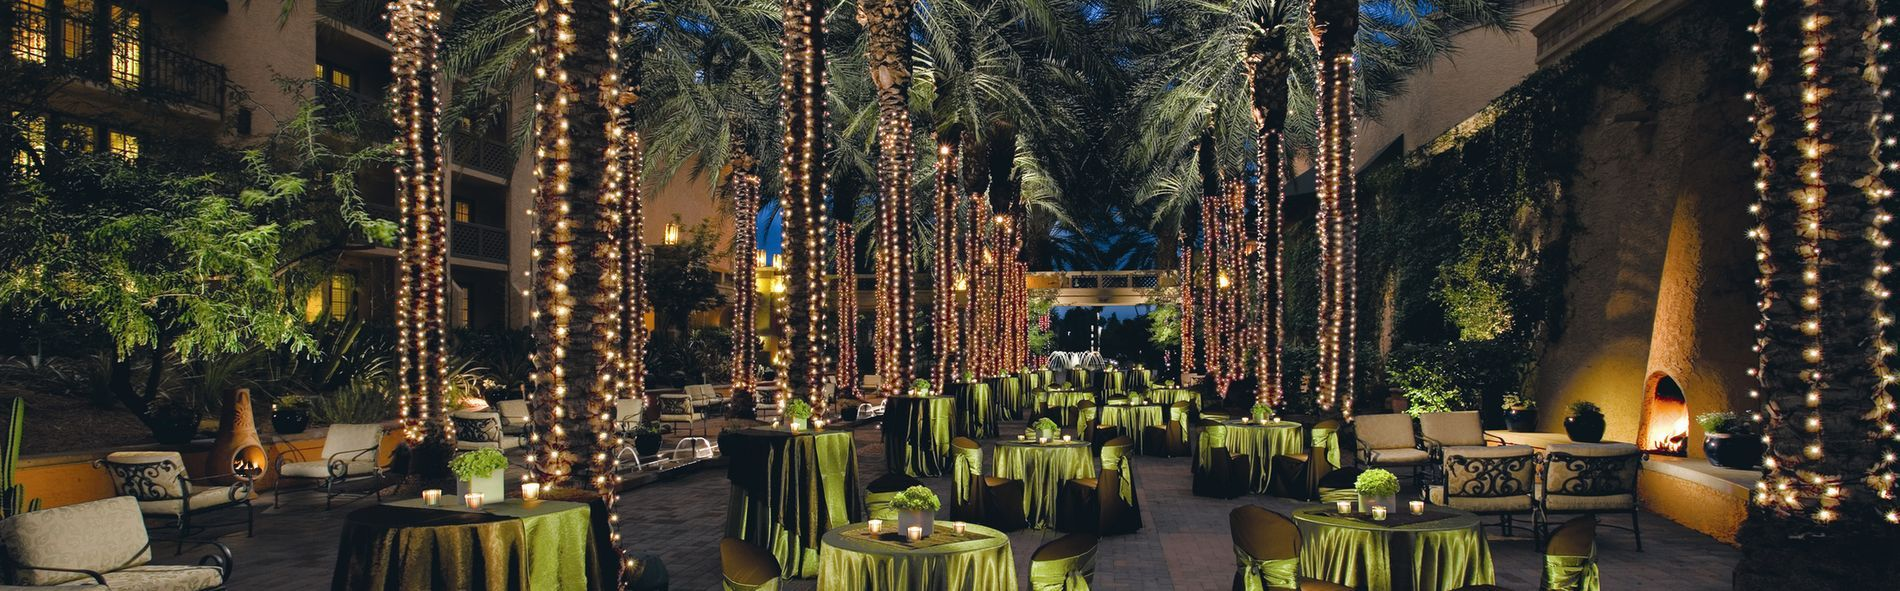 Arizona Grand Resort  Spa  Premier Outdoor Event Venues